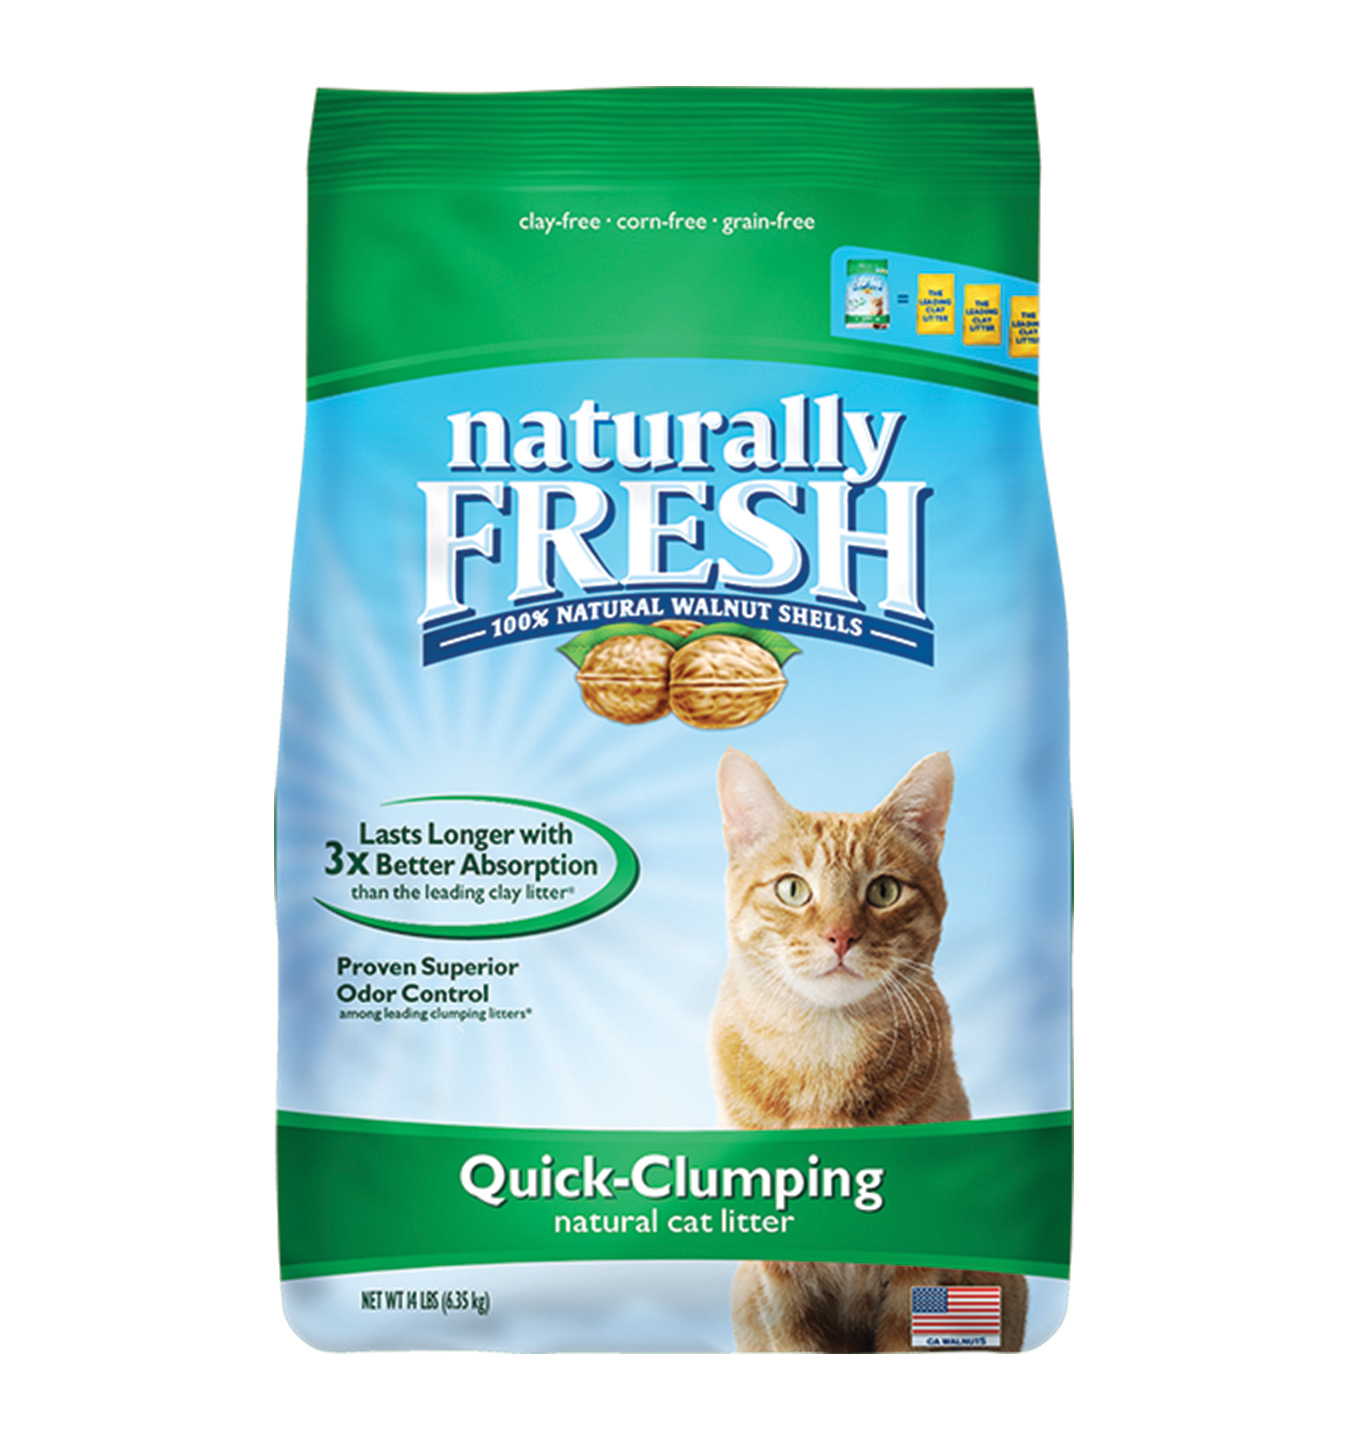 Naturally Fresh Walnut-Based Quick-Clumping Cat Litter, 14-lb bag